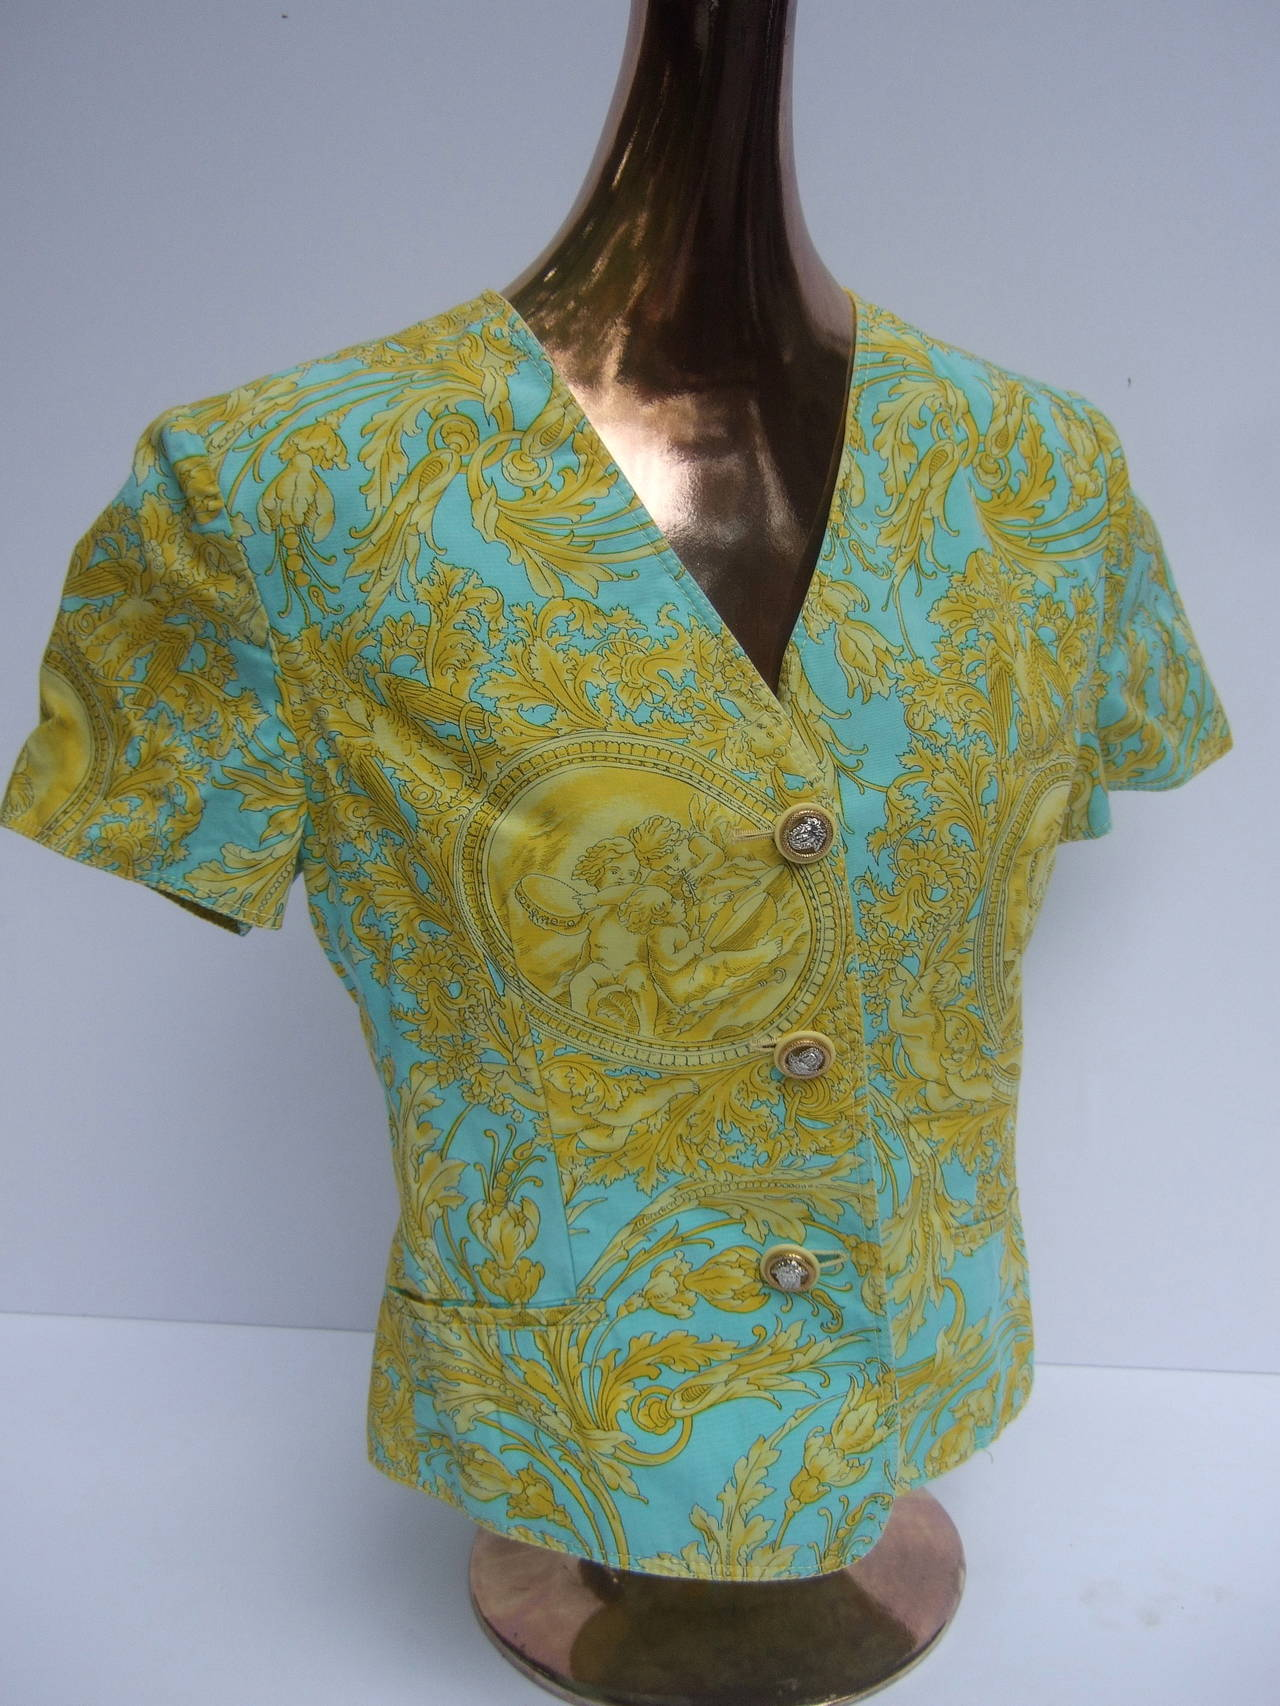 Versace vibrant print Medusa button cotton jacket US Size 10   The bold print is illustrated with cherubs & eagles concealed in the sinuous foliage. The crisp short sleeve cotton jacket is adorned with three ornate silver & gilt metal Medusa